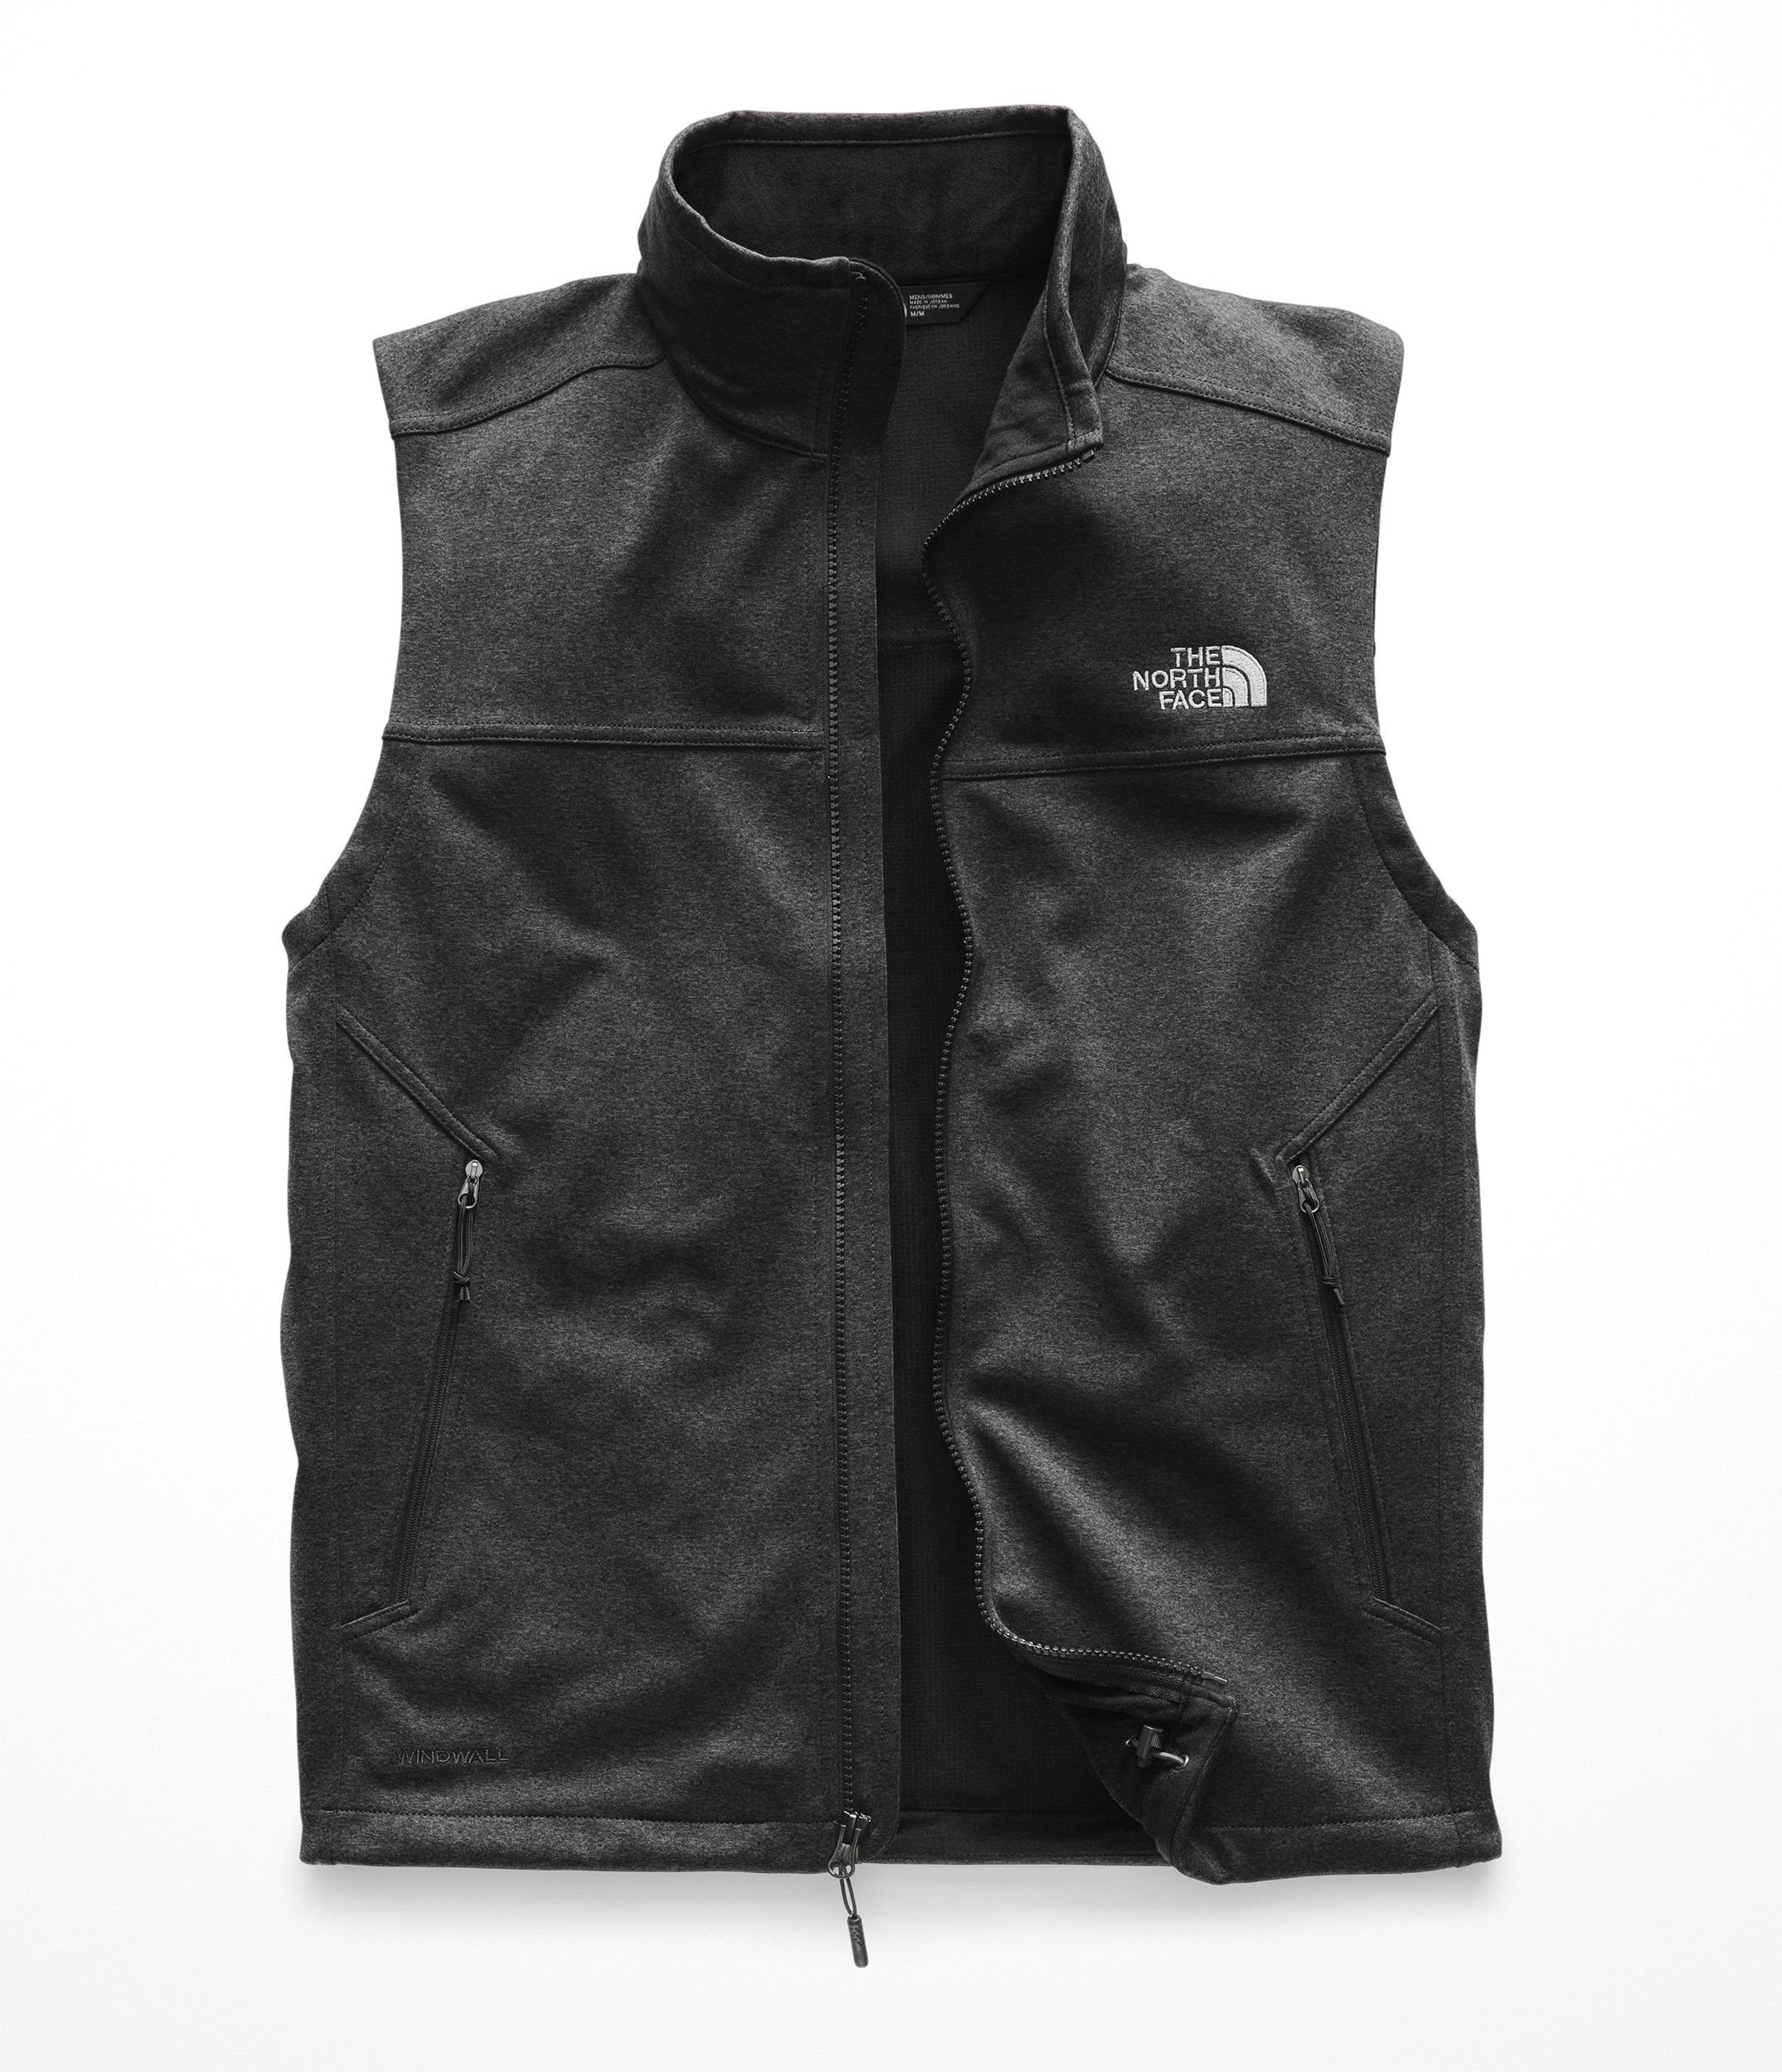 The North Face Men's Apex Canyonwall Vest - TNF Dark Grey Heather & TNF Dark Grey Heather - M